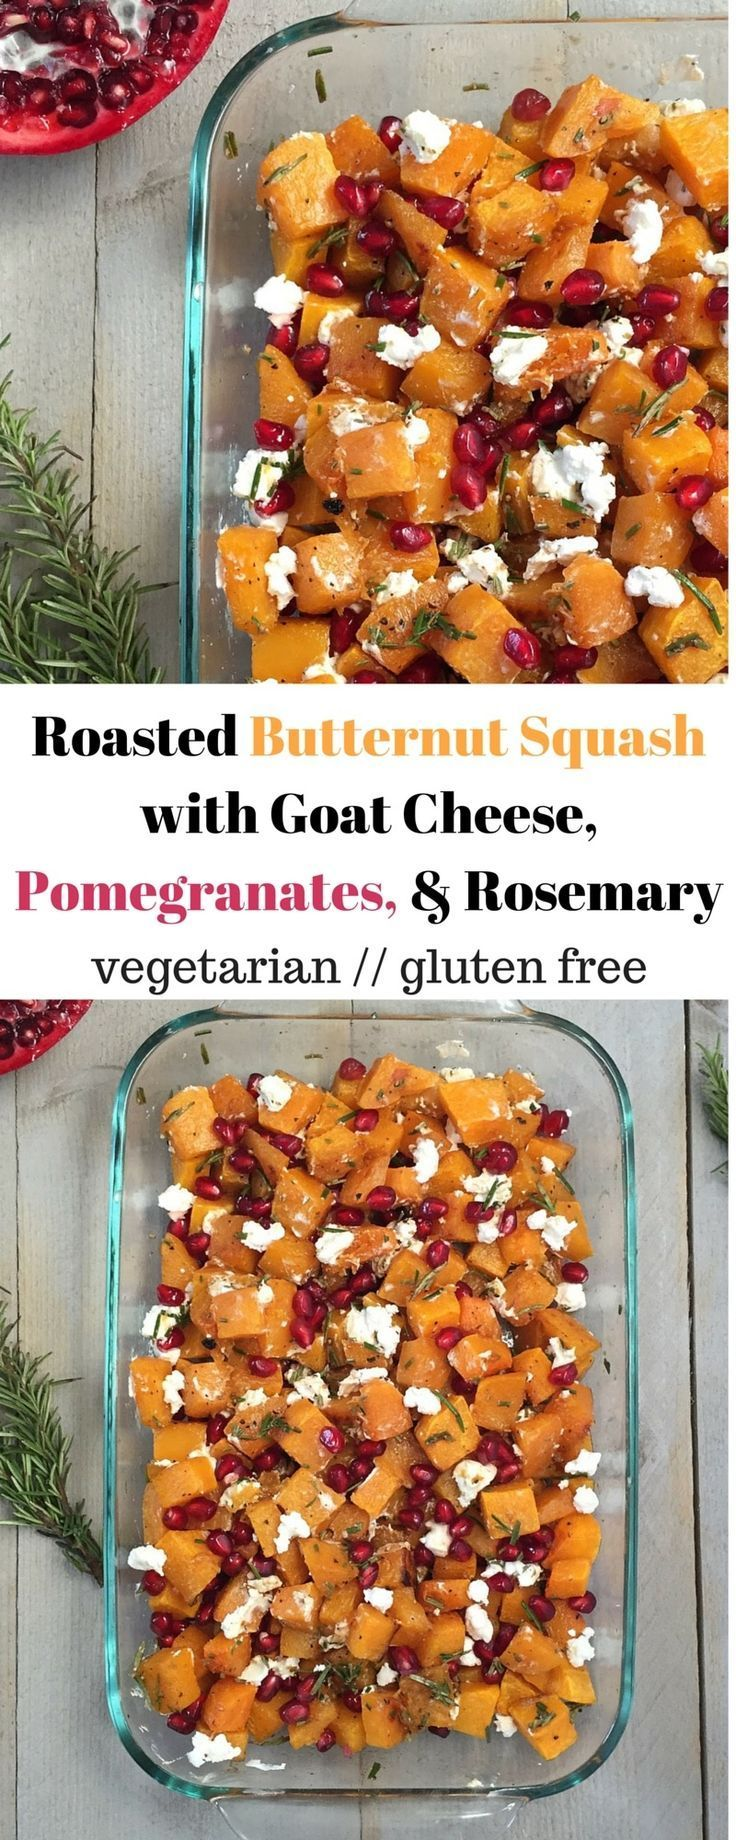 Roasted butternut squash combined with goat cheese, pomegranates, and rosemary make this simple, healthy, flavor packed dish a star at your holiday gatherings - Eat the Gains